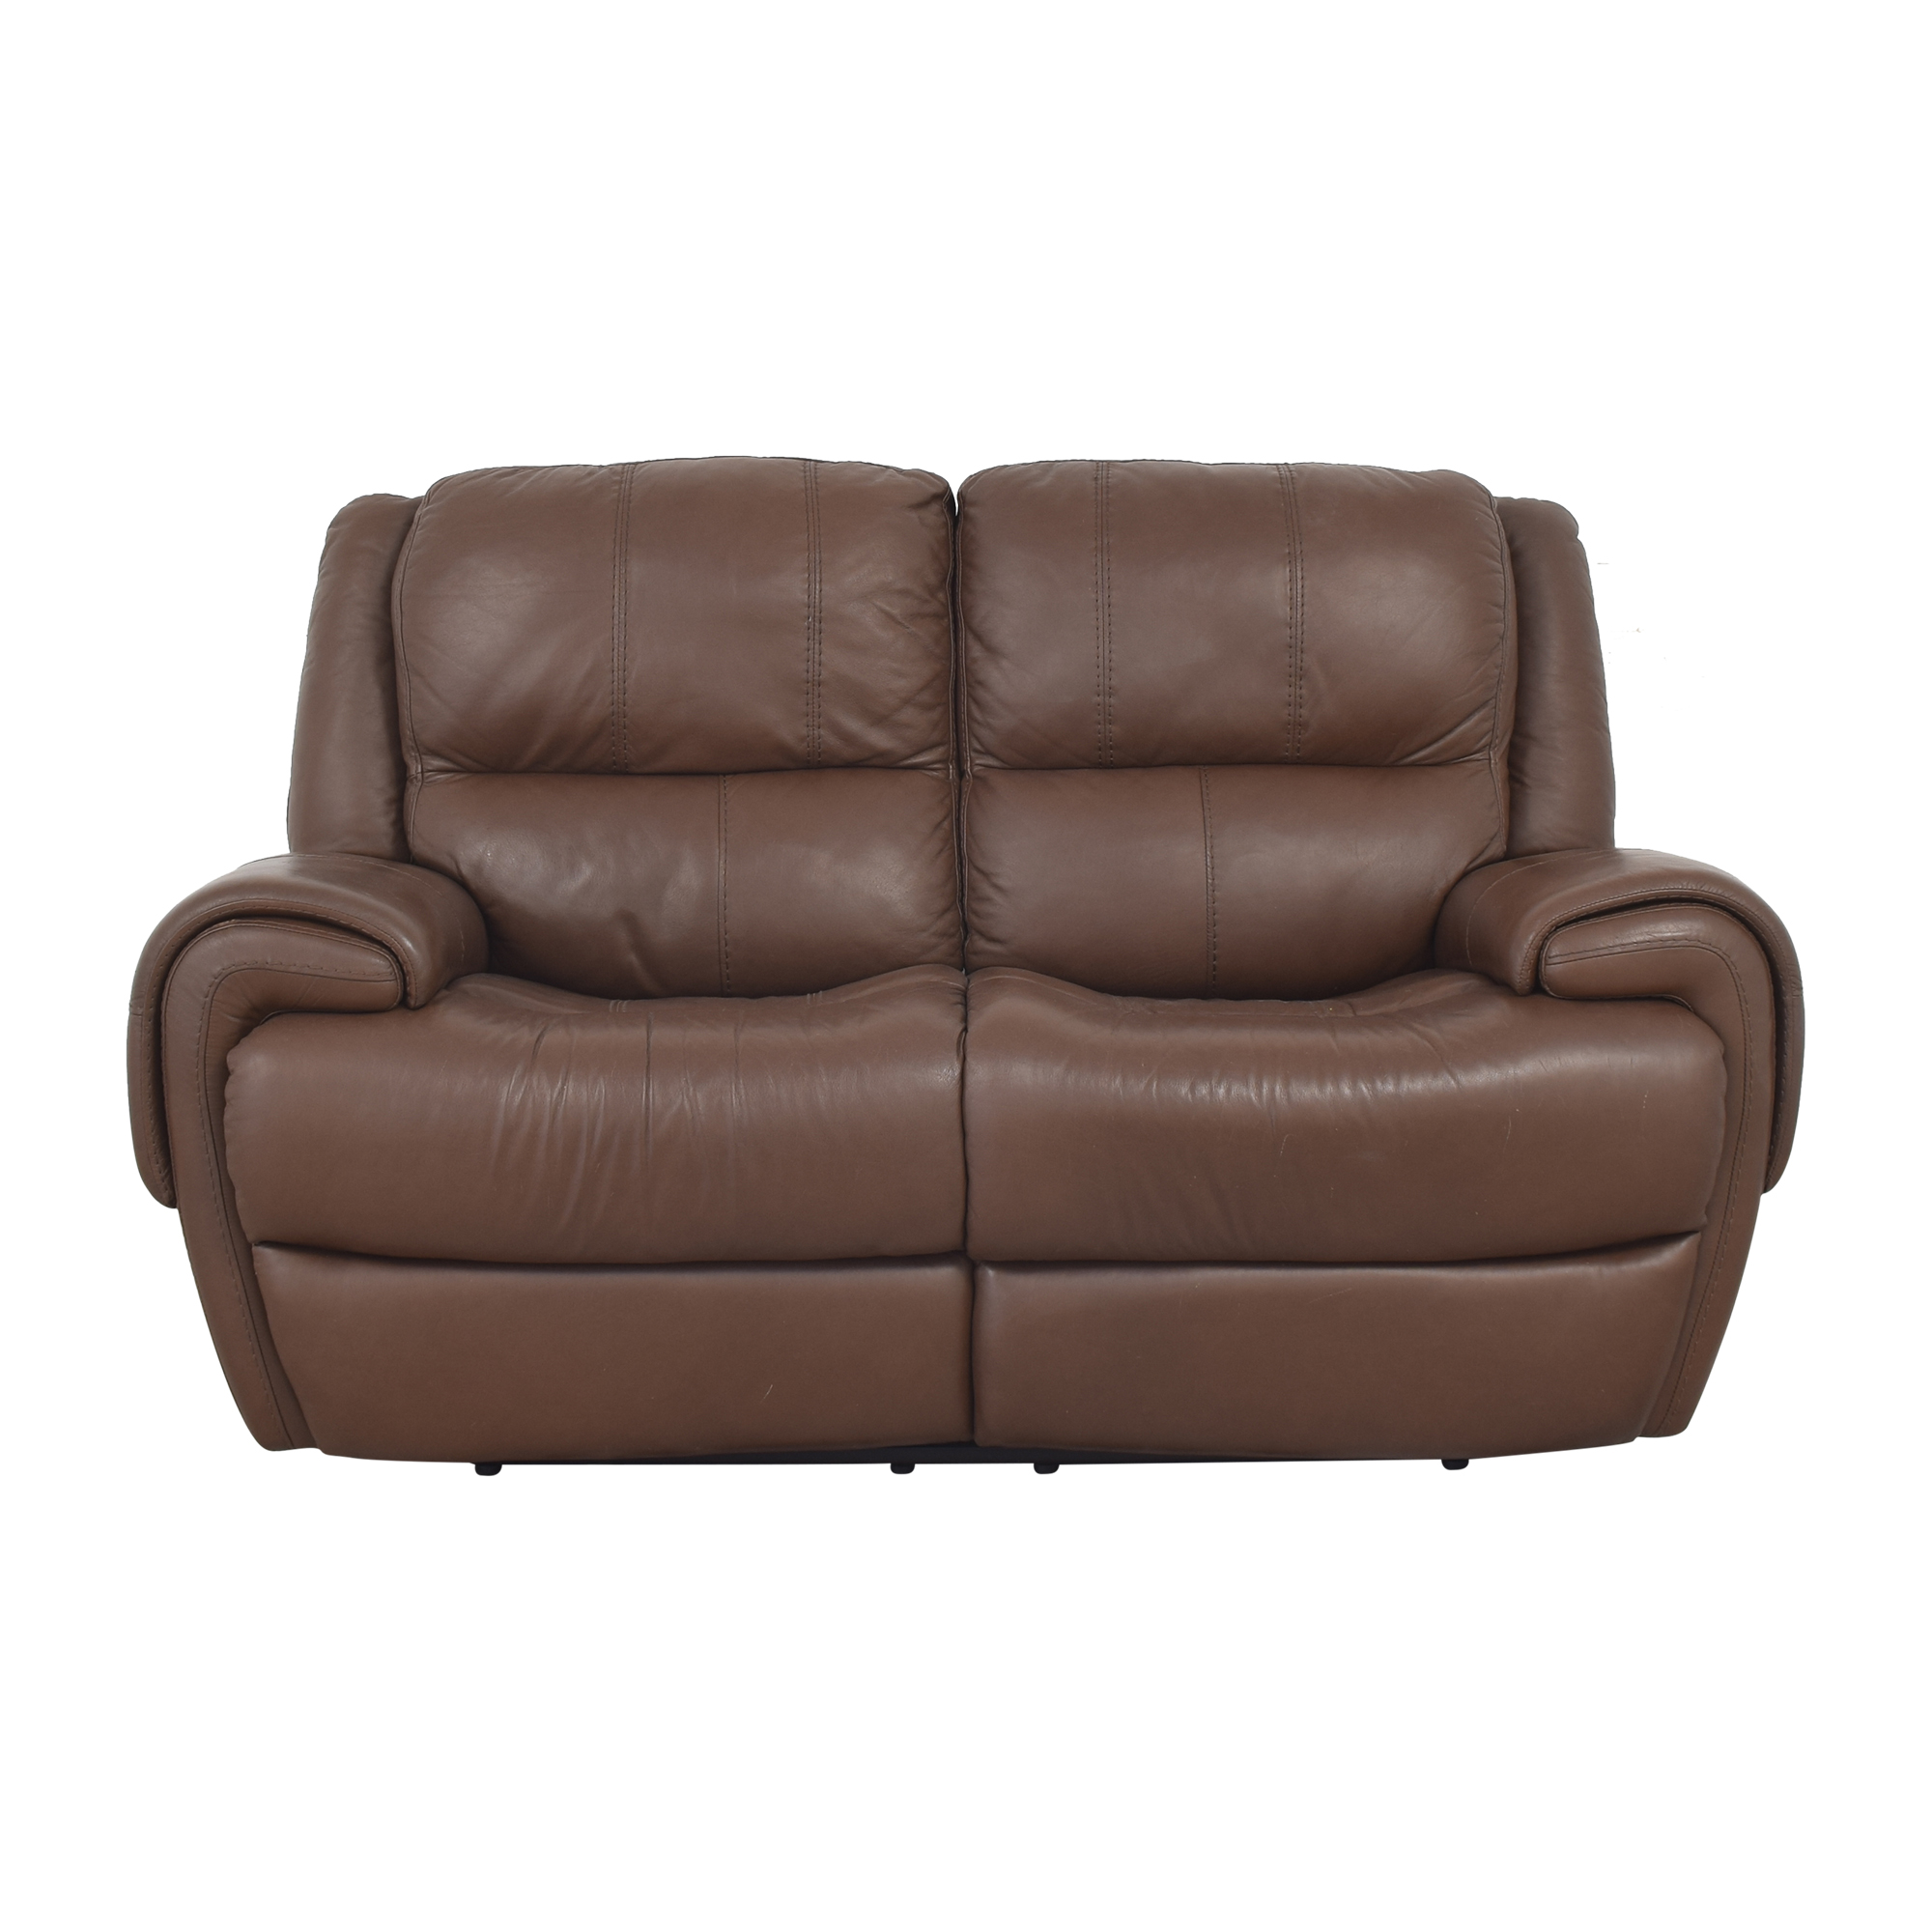 shop Raymour & Flanigan Colvin Power-Reclining Loveseat Raymour & Flanigan Sofas